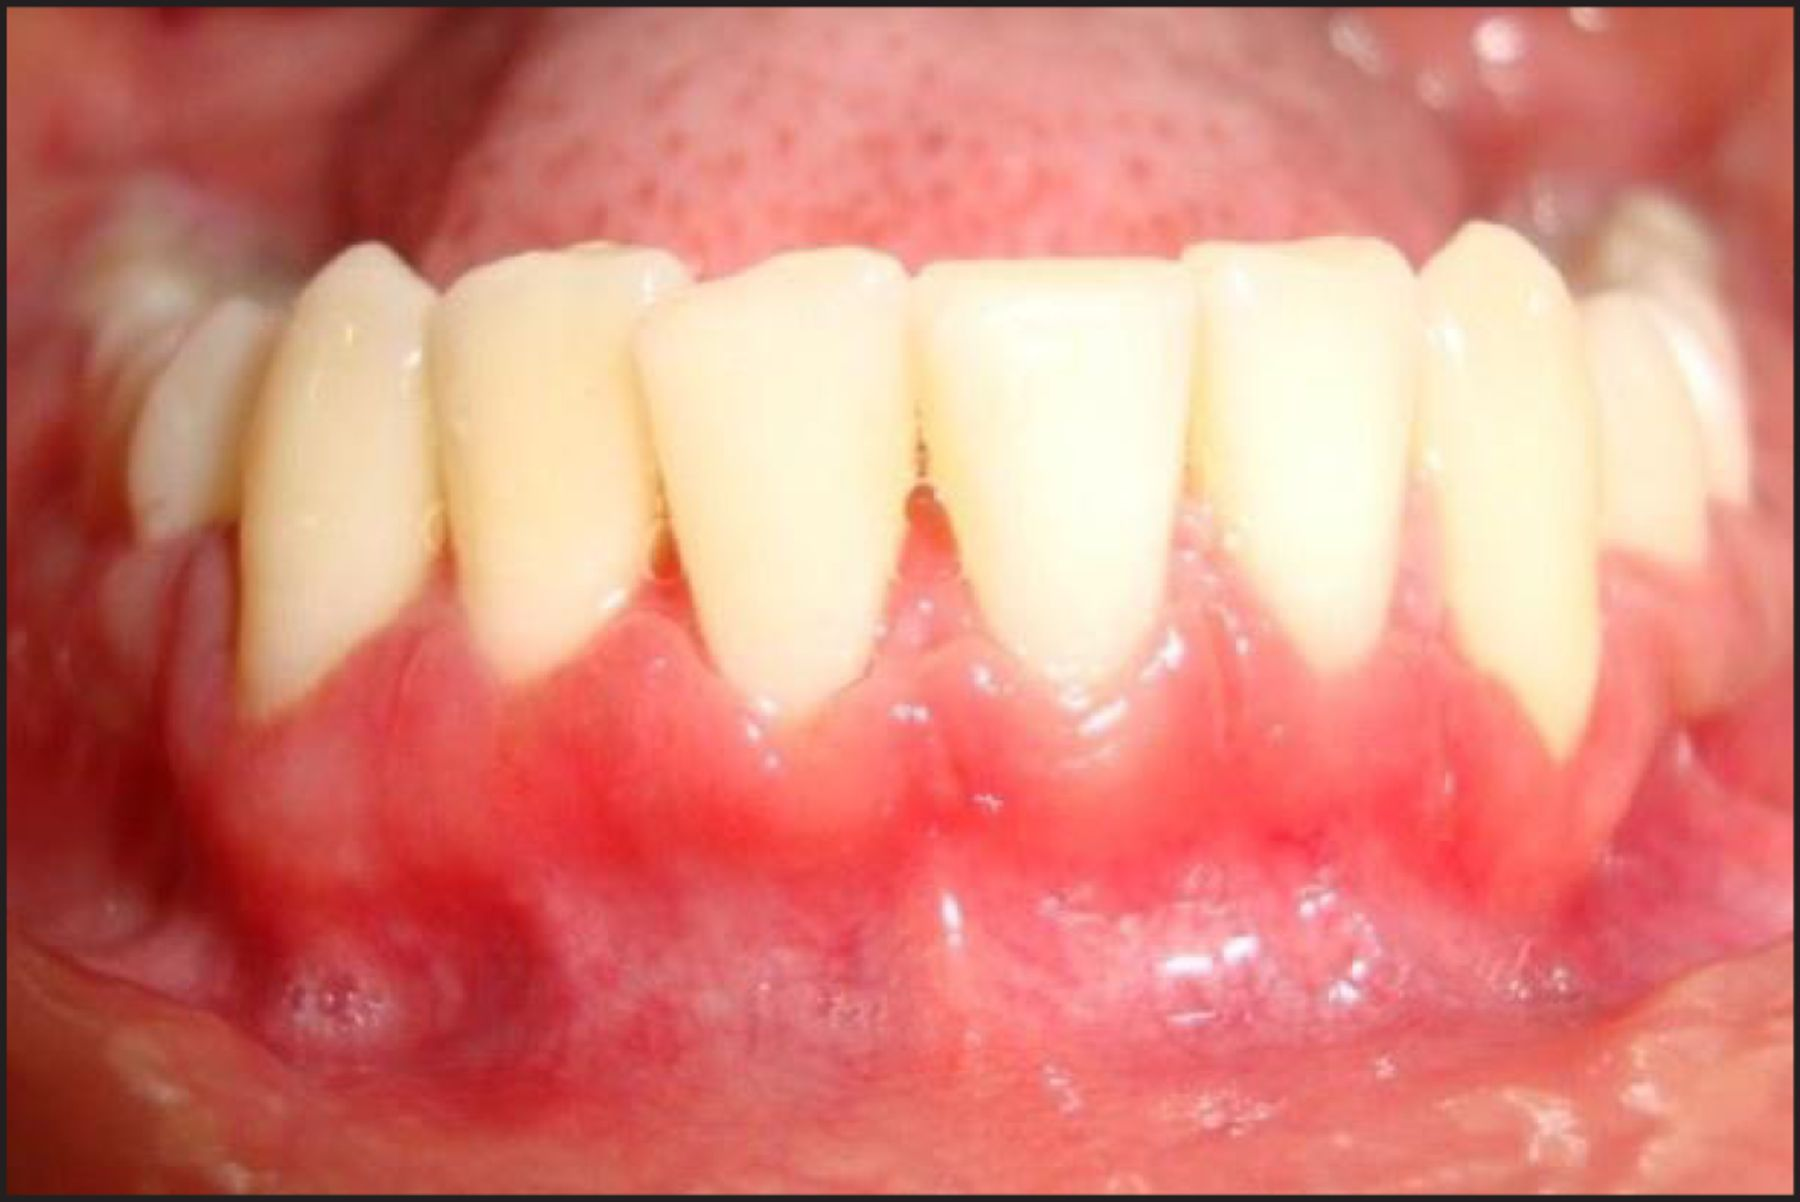 Fibromatosis of gums: causes, forms, symptoms, treatment. Hyperplasia of gums